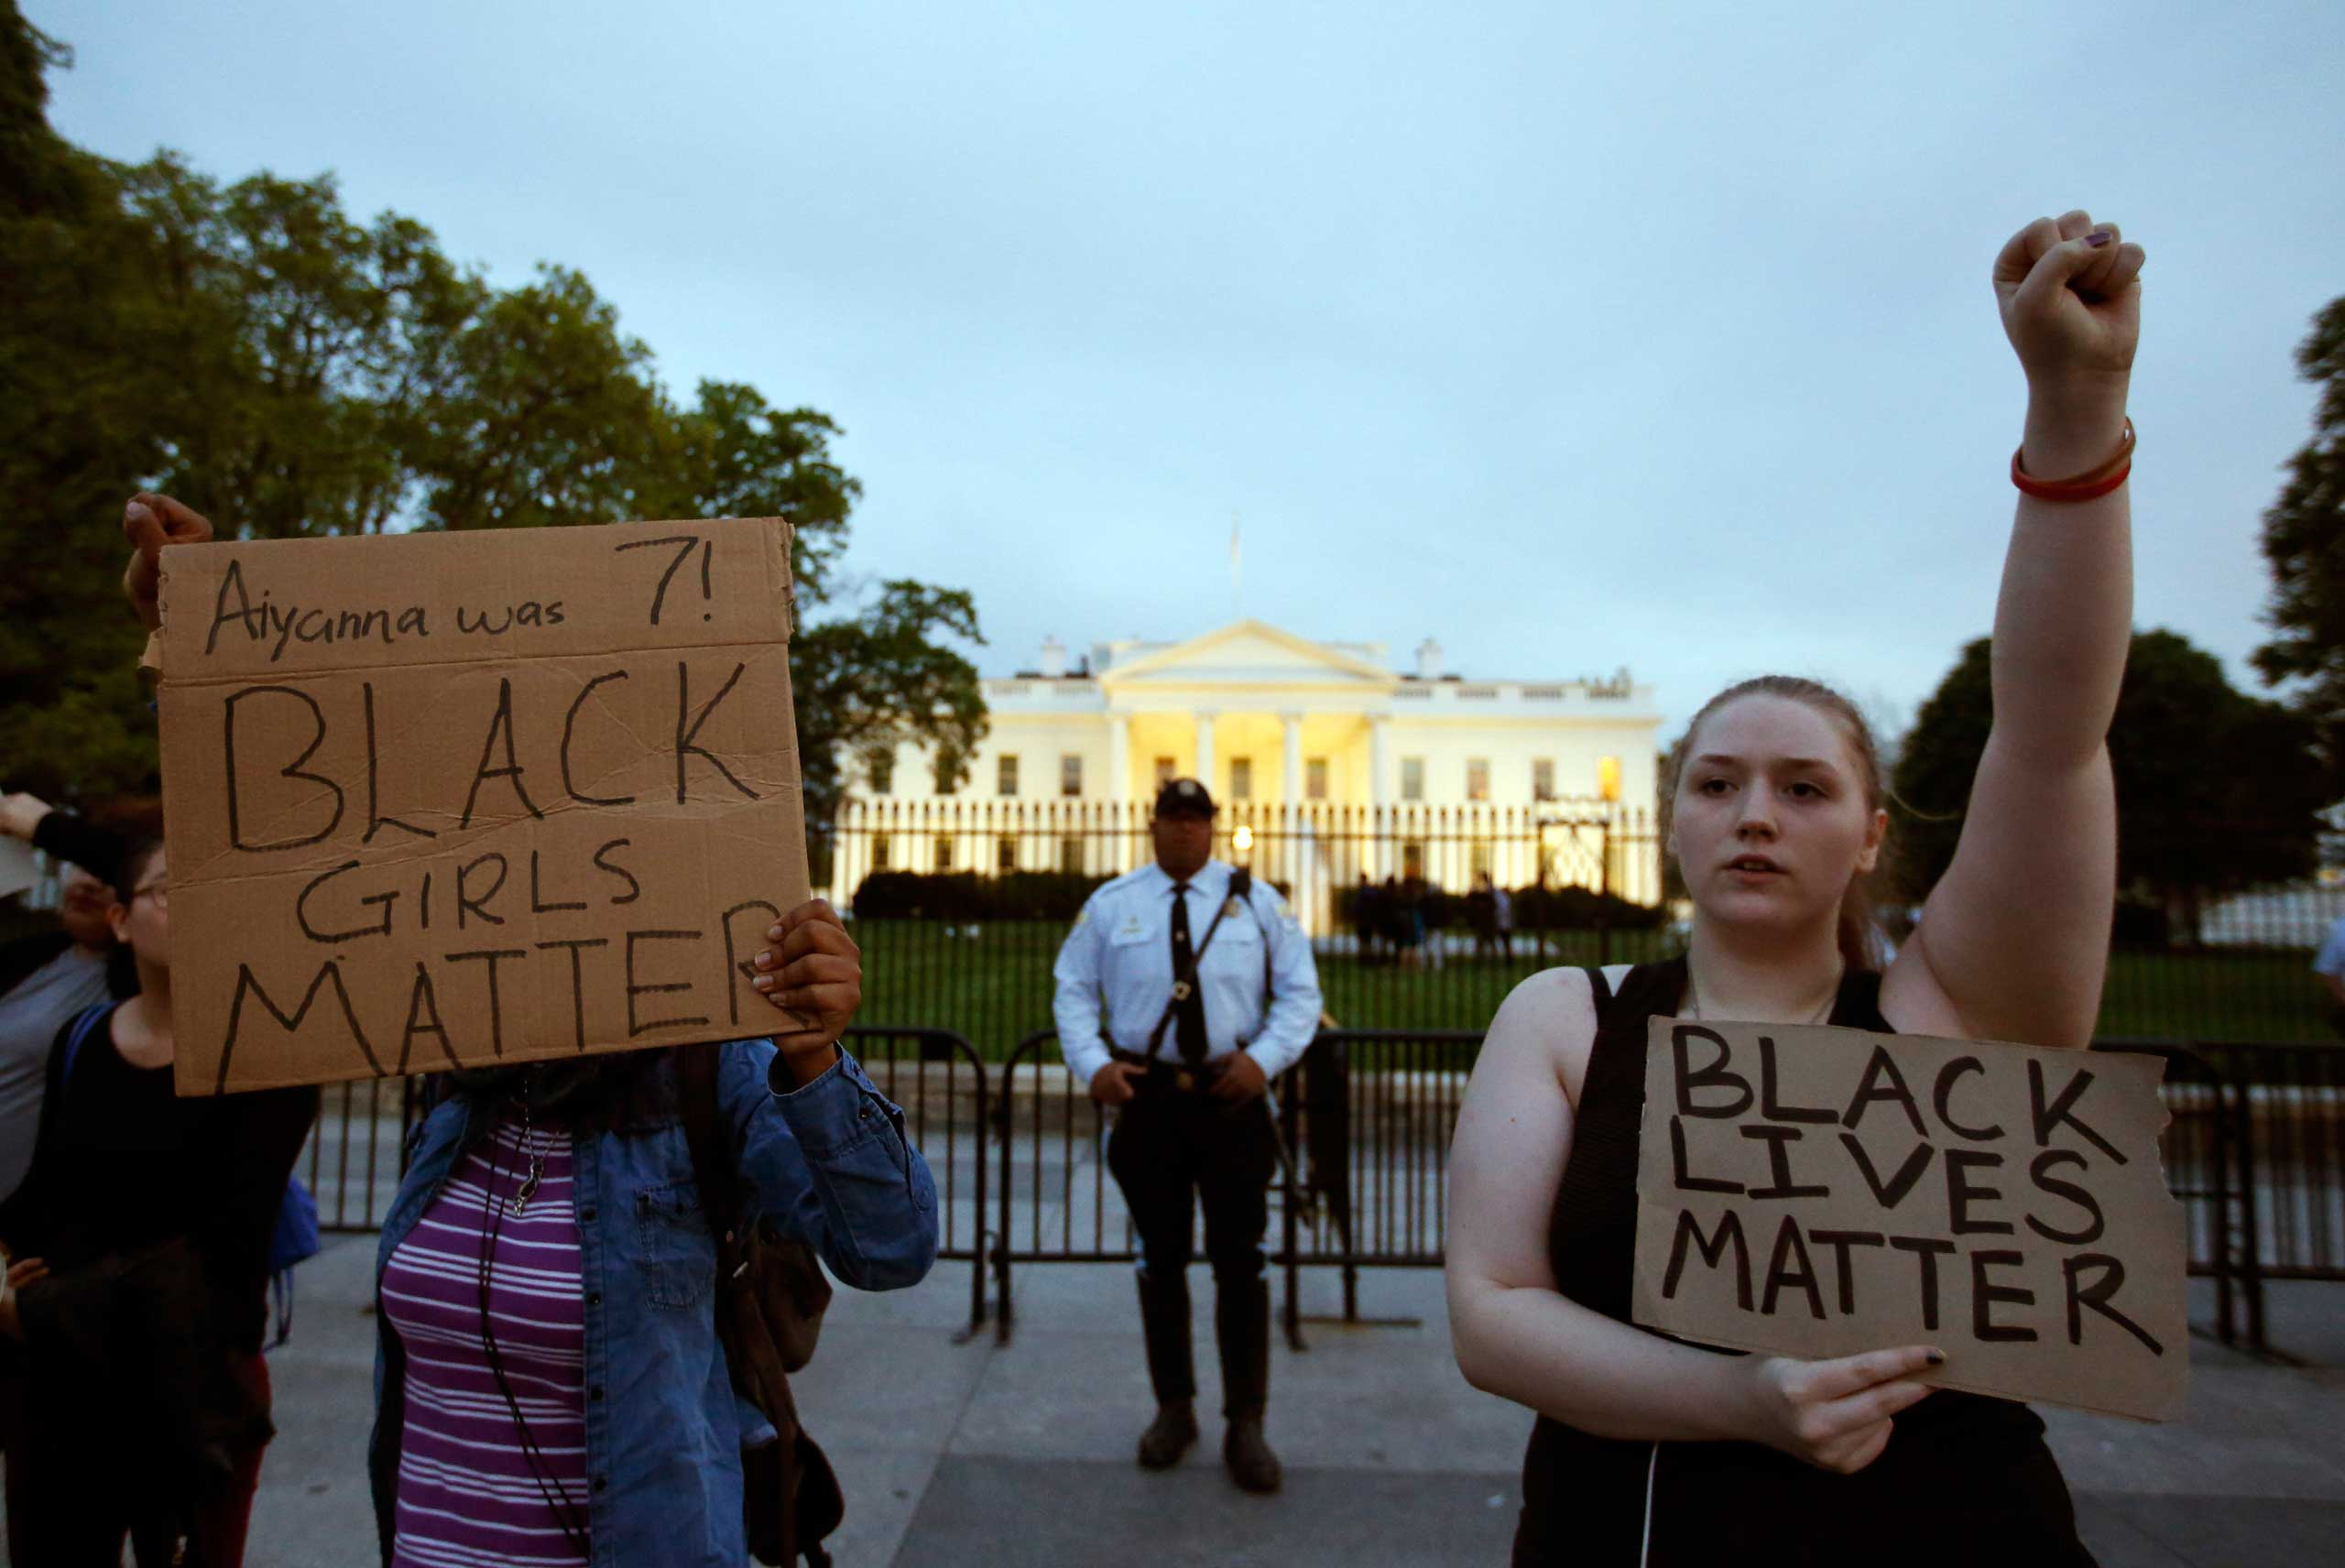 Protestors hold signs during a protest to support the rallies in Baltimore, in front of the White House in Washington on April 29, 2015.